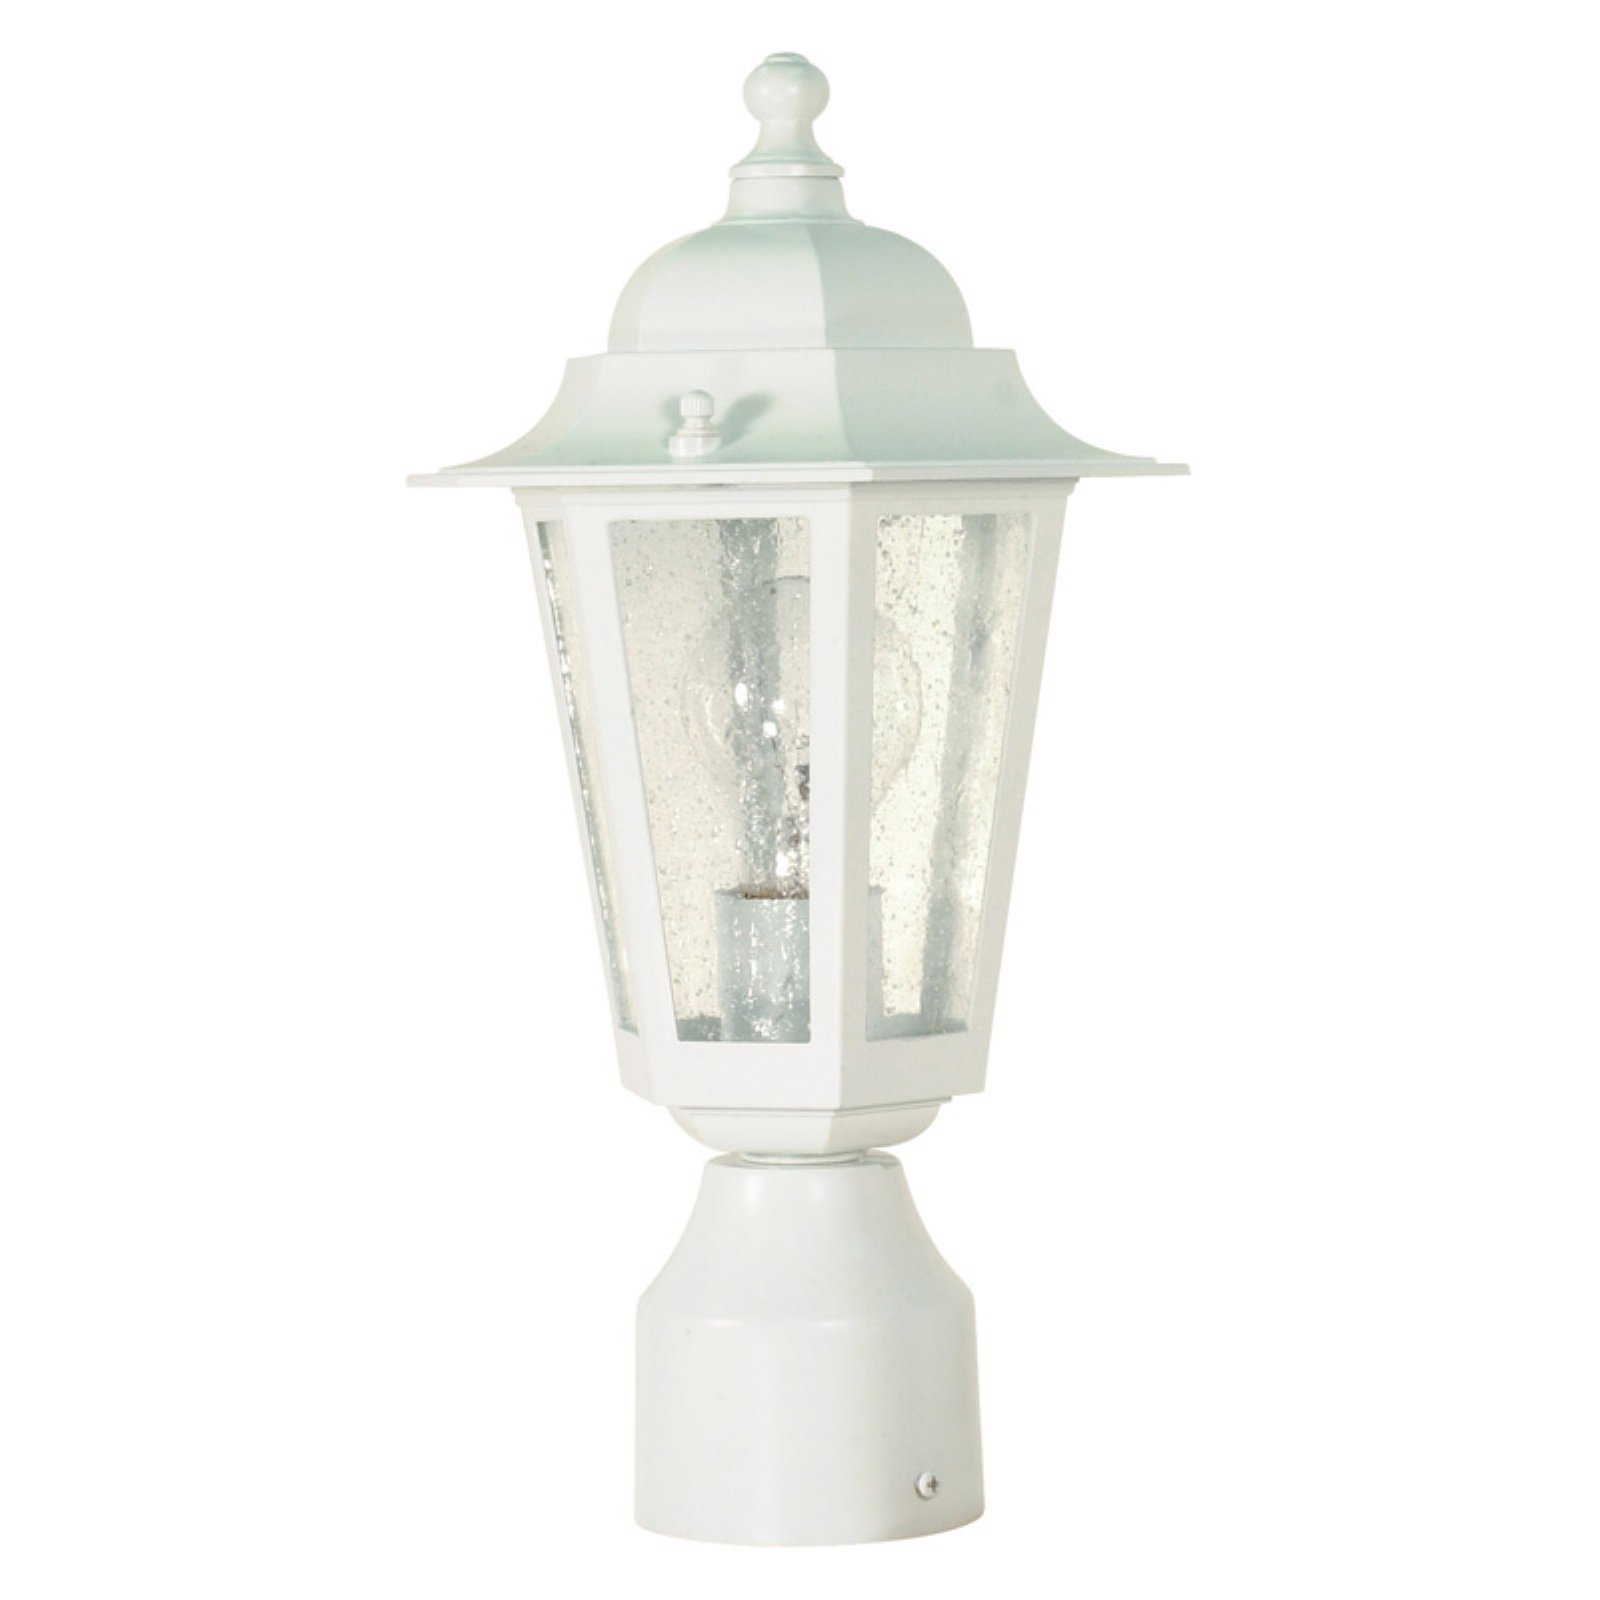 Nuvo Cornerstone 14 in. Post Lantern by Supplier Generic